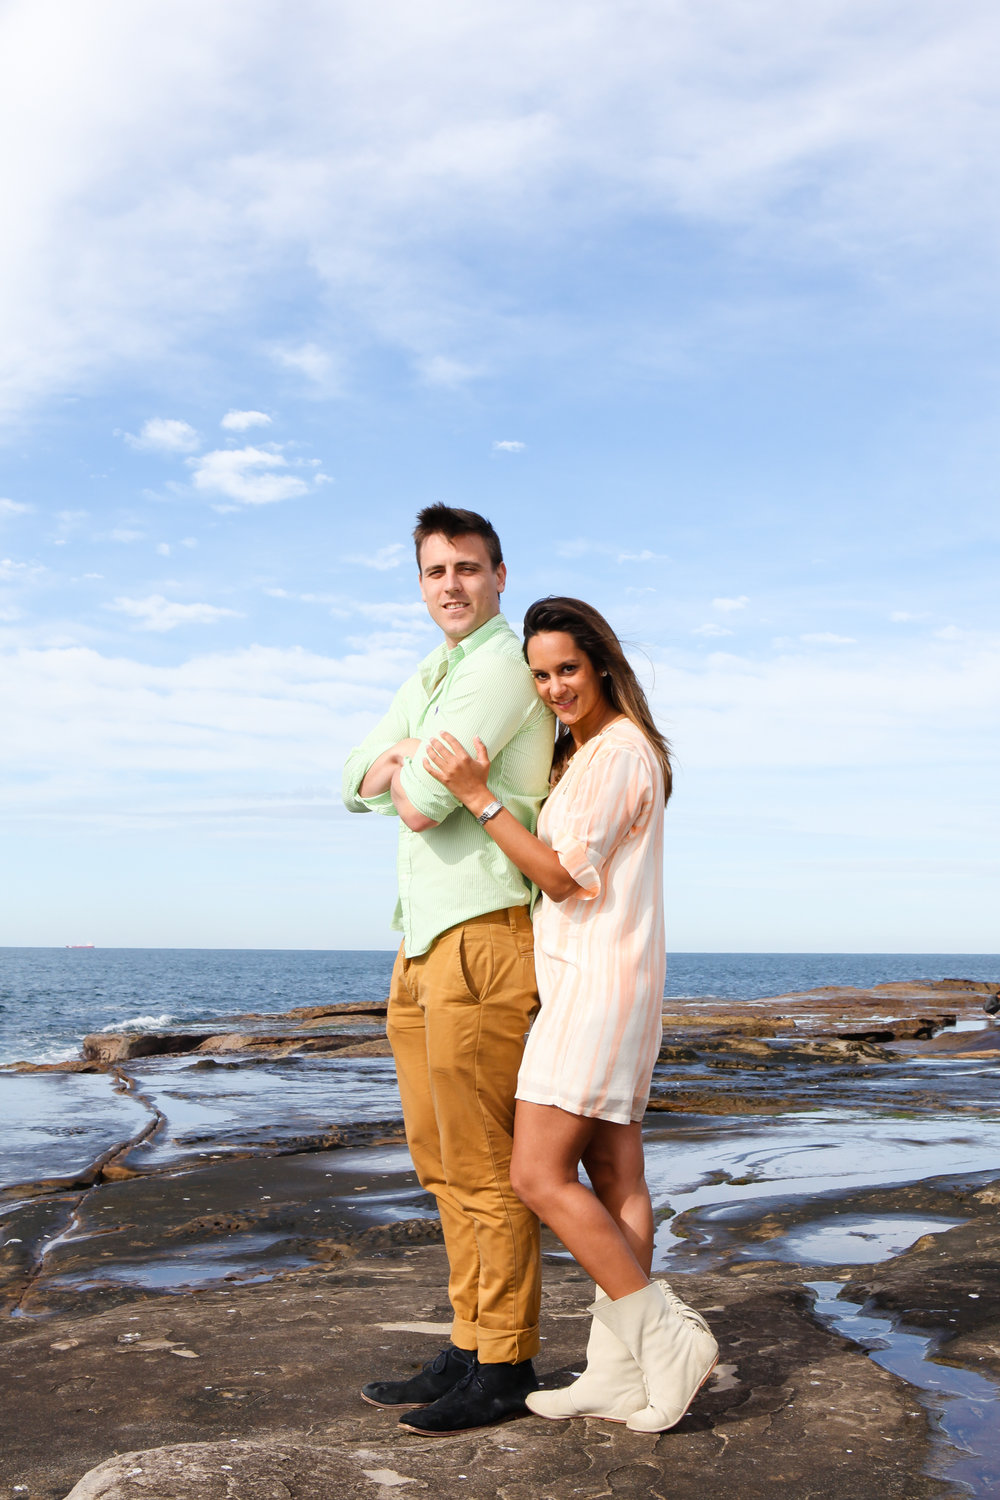 IlkkaandArianne_Engagement_Photography-6.jpg